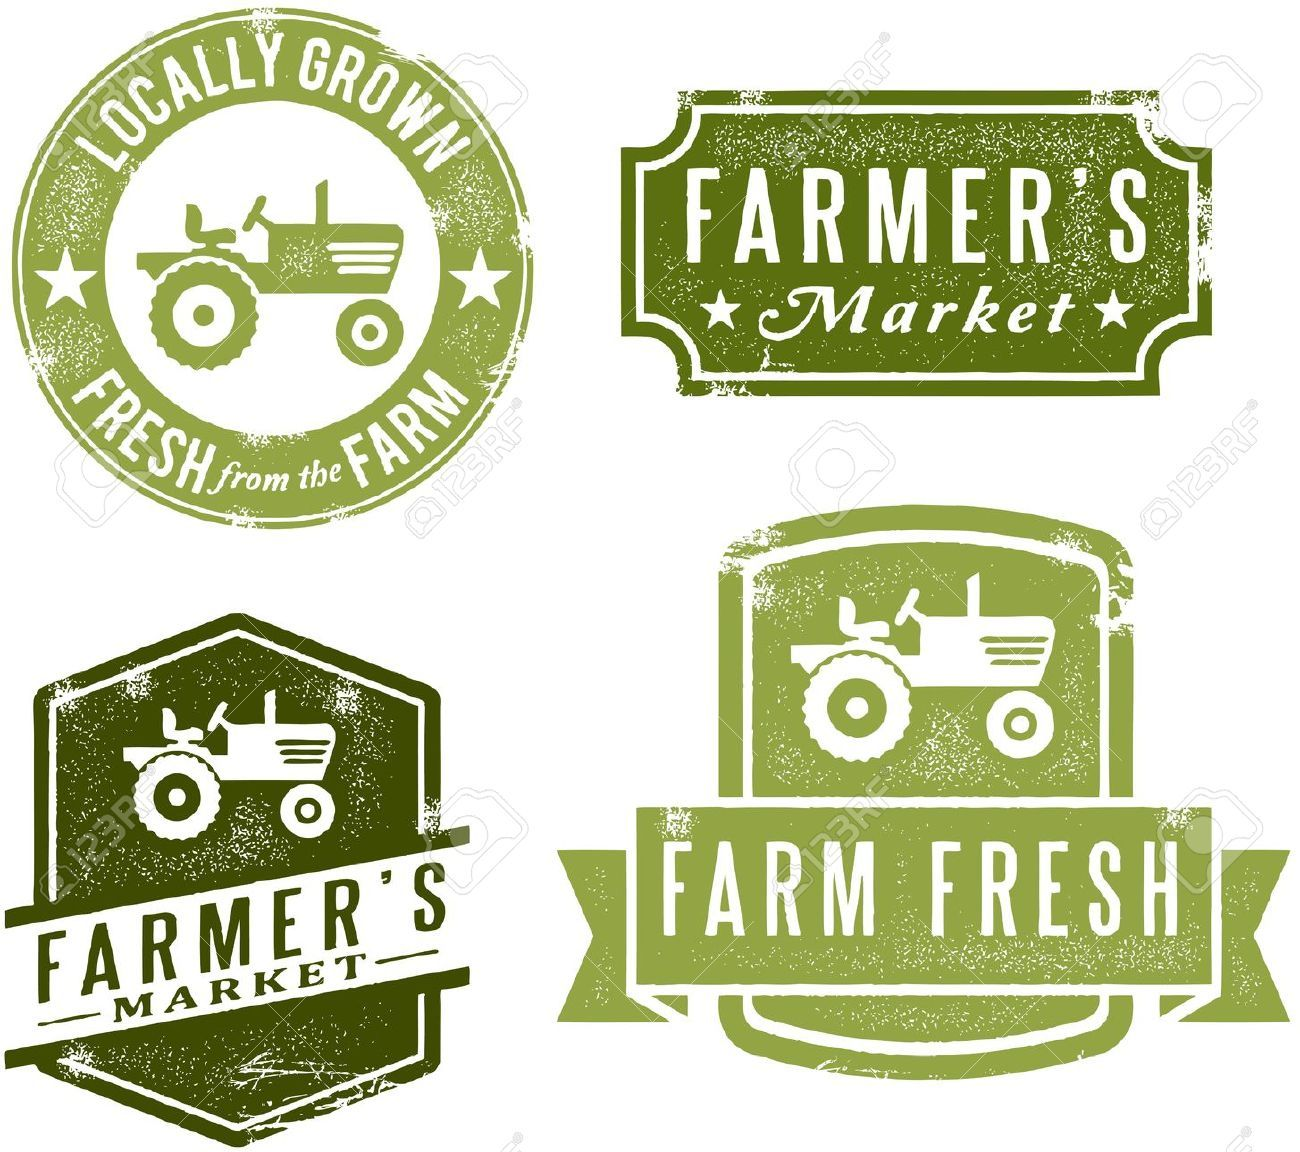 Vintage Style Farmers Market Stamps Royalty Free Cliparts Vectors And Stock Illustration Pic